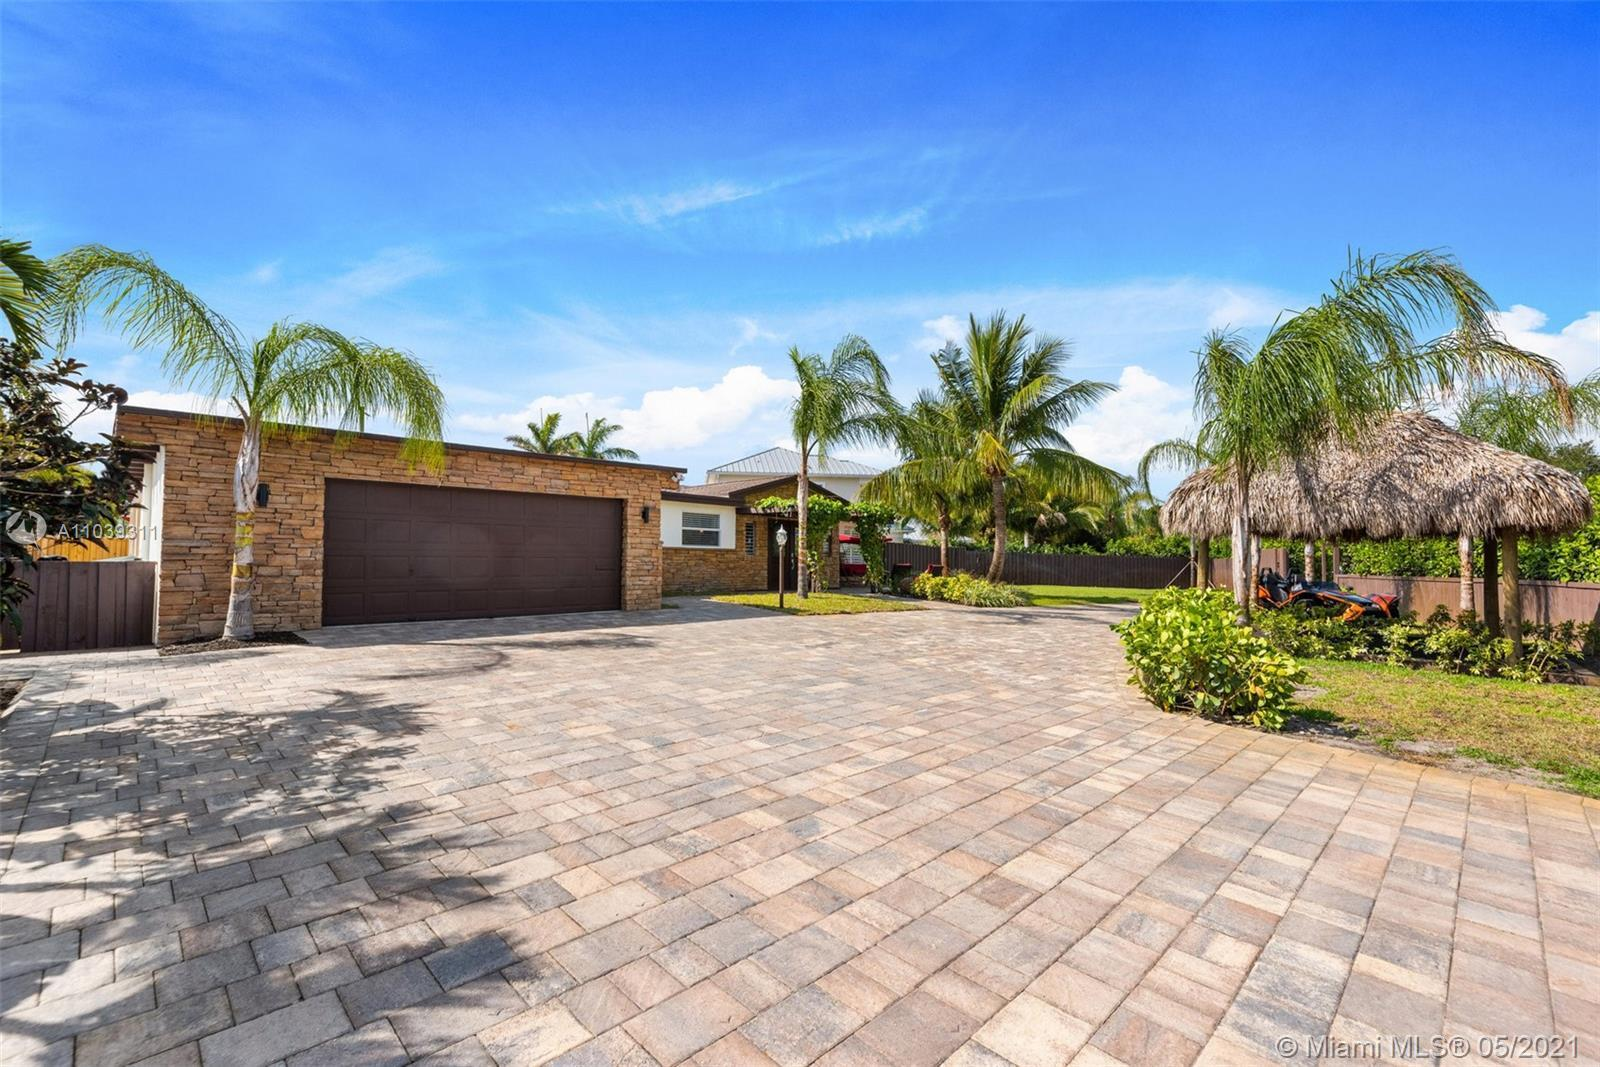 Beautiful property for an investor interested in developing a multi-million dollar home in East Boca